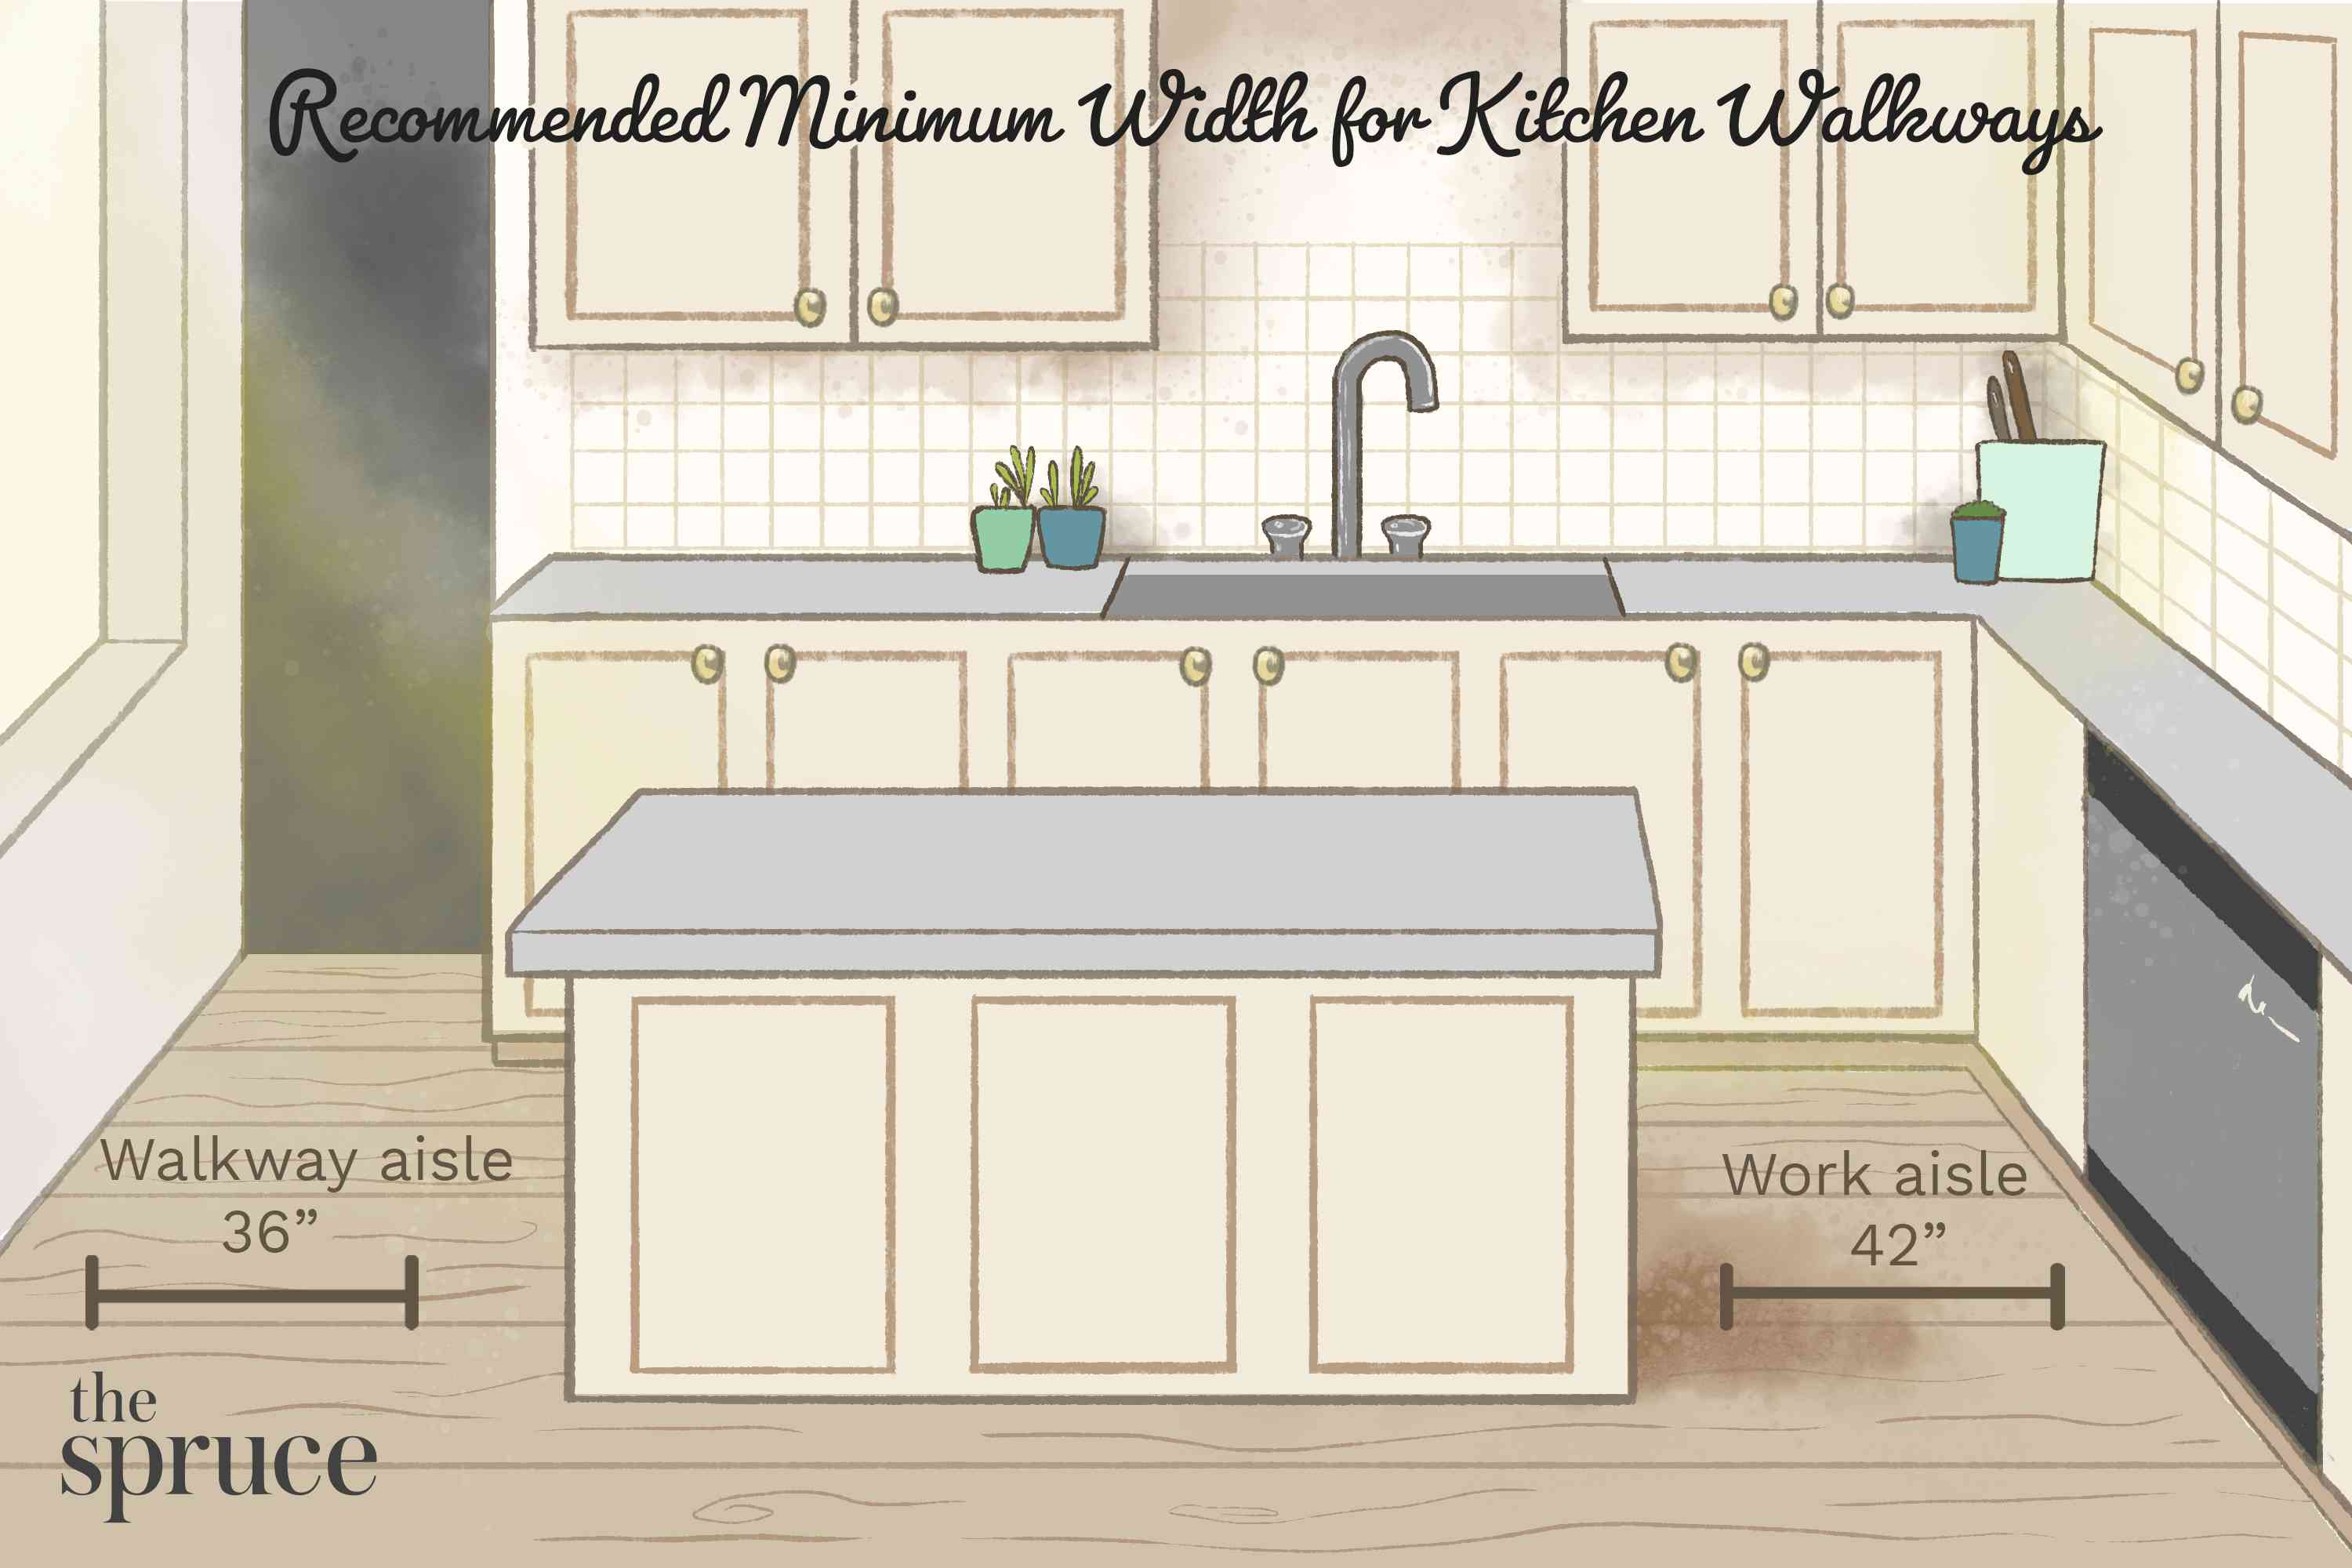 Recommended Width for Kitchen Walkways